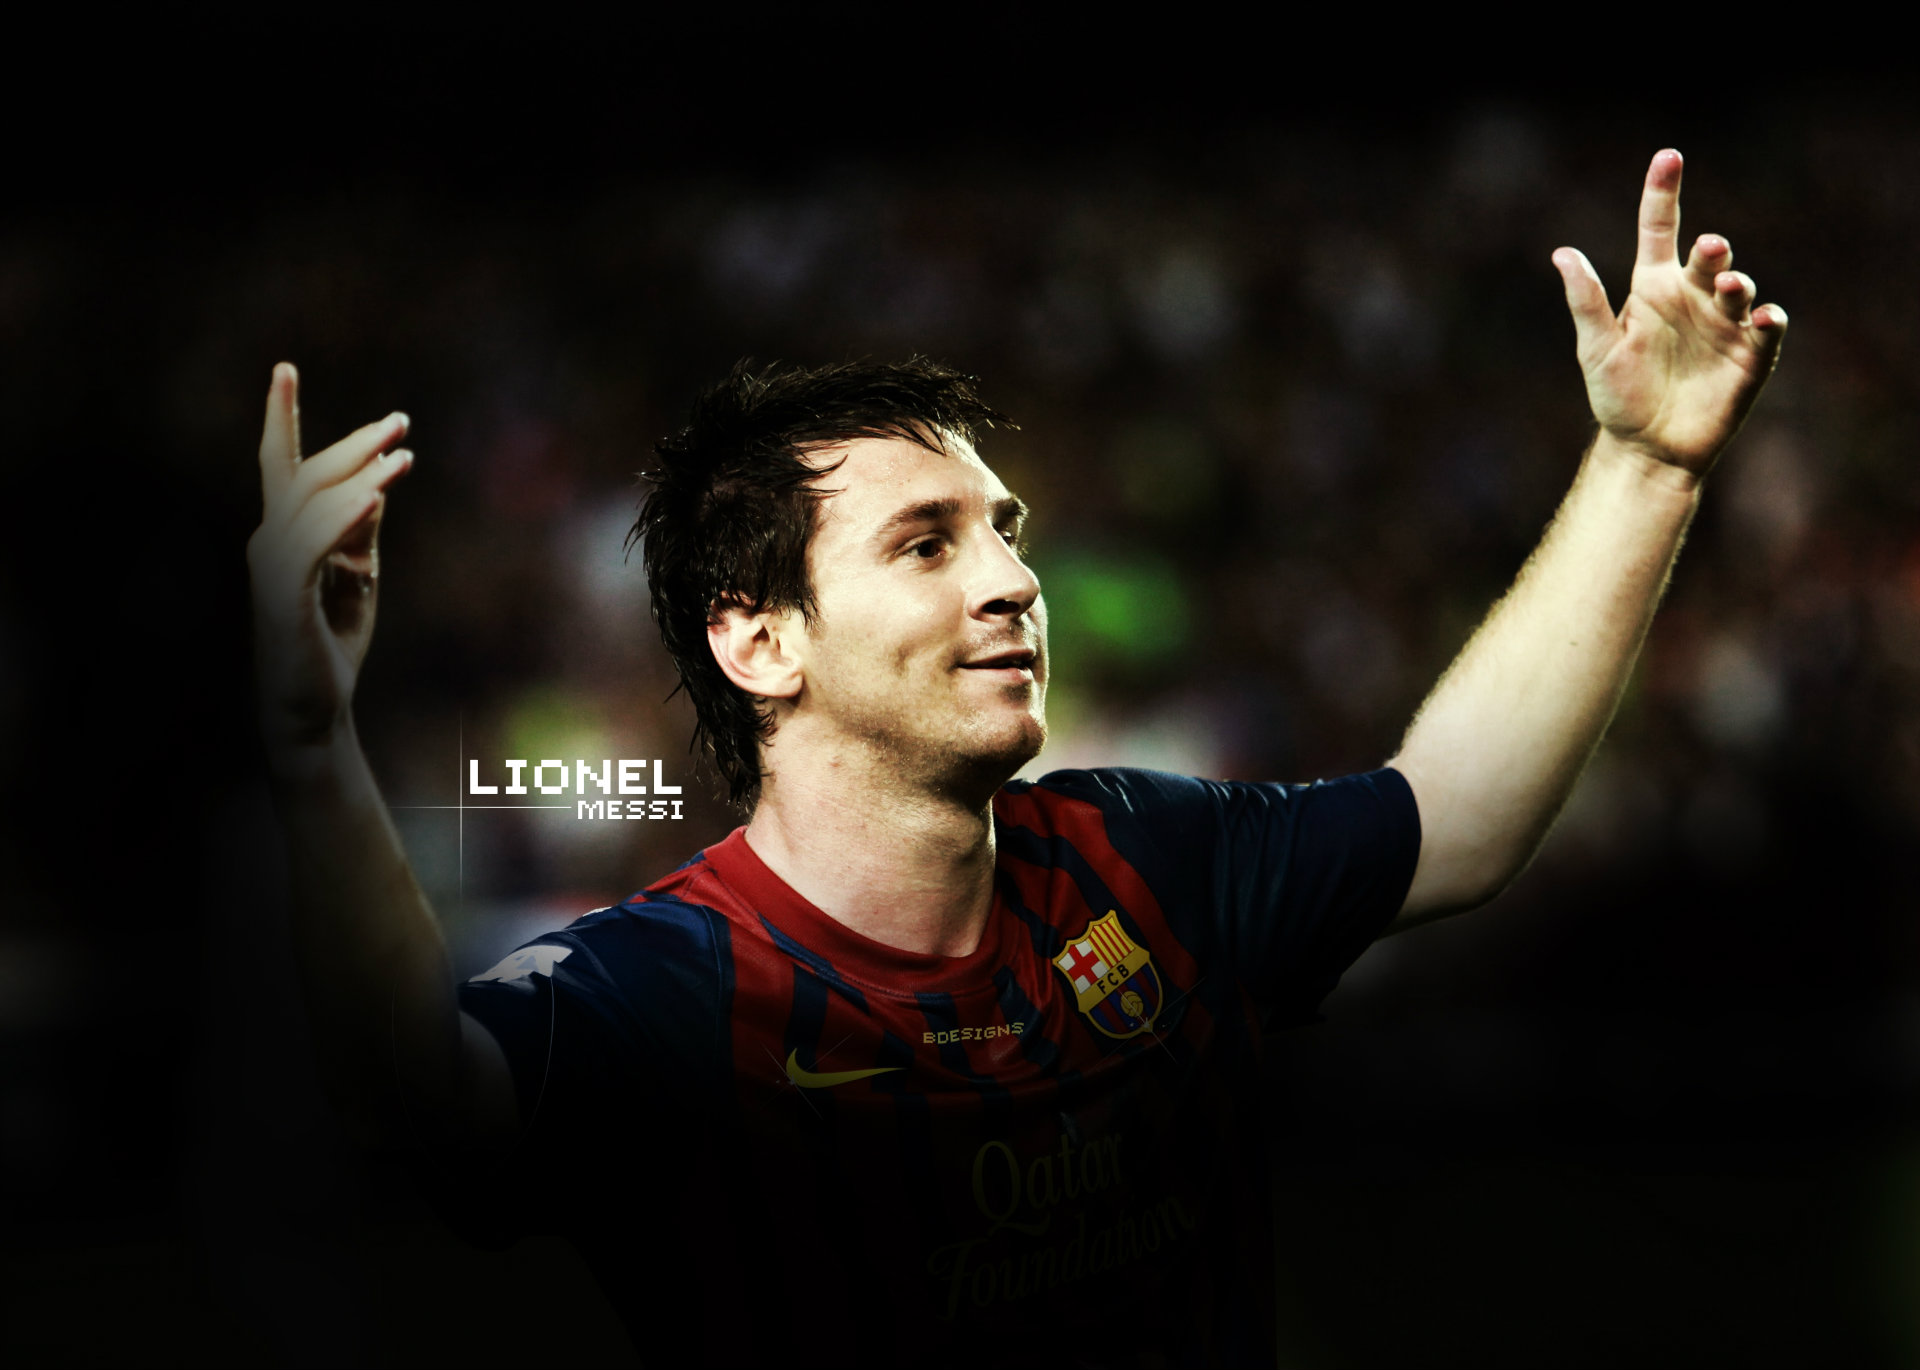 Download Lionel Messi 2016 Wallpaper HD Wallpapers 1920x1370